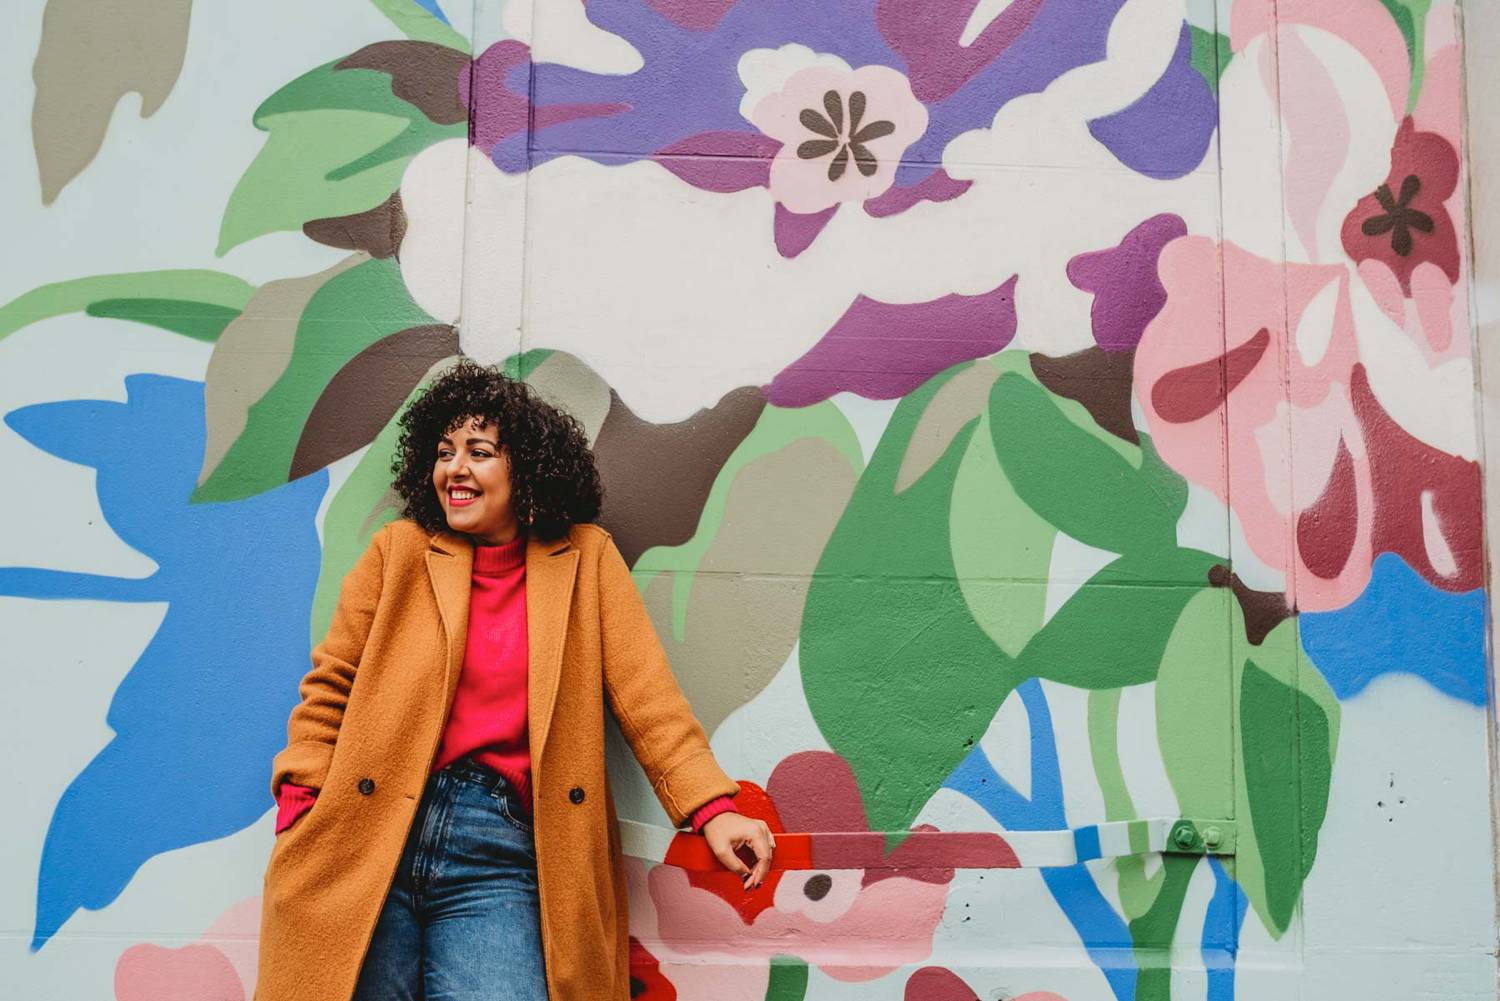 A woman business owner wearing jeans, a pink sweater, and a mustard yellow coat stands smiling against a massive wall of graffiti in Atlanta, Georgia.